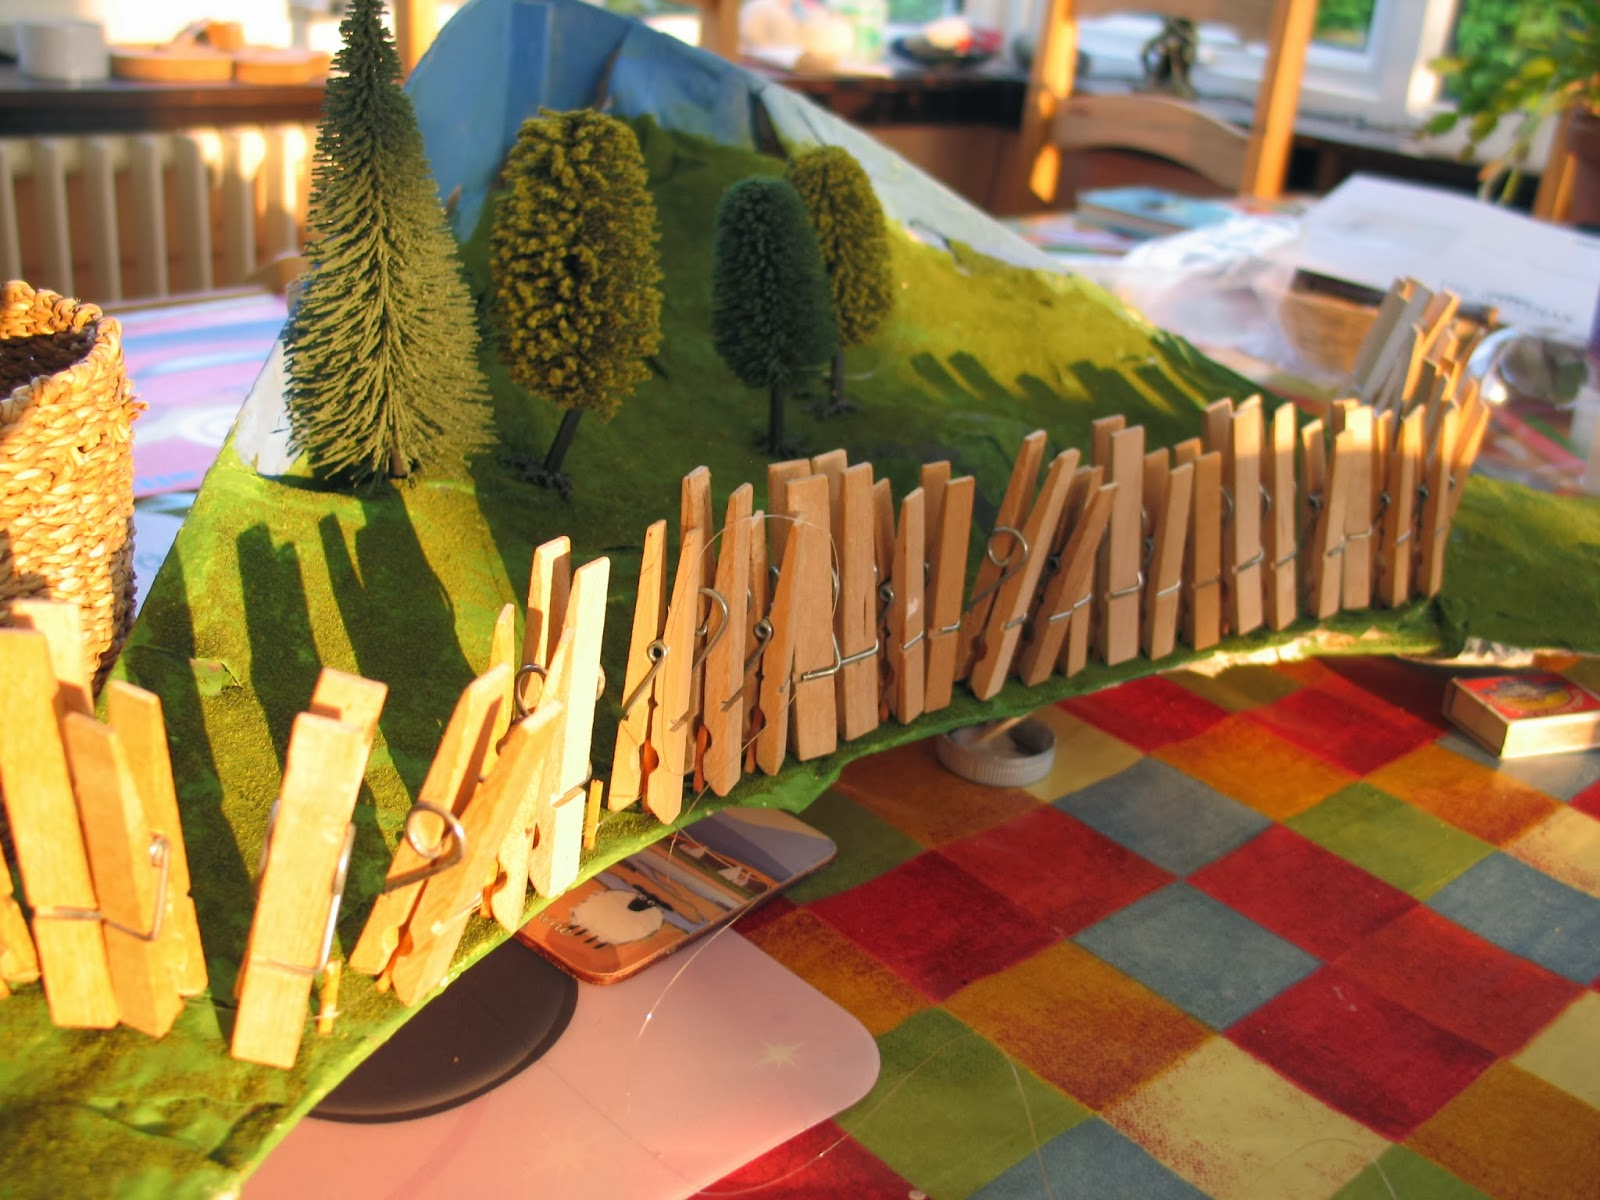 Ink-spots and grass-stains: Progress on the model railway